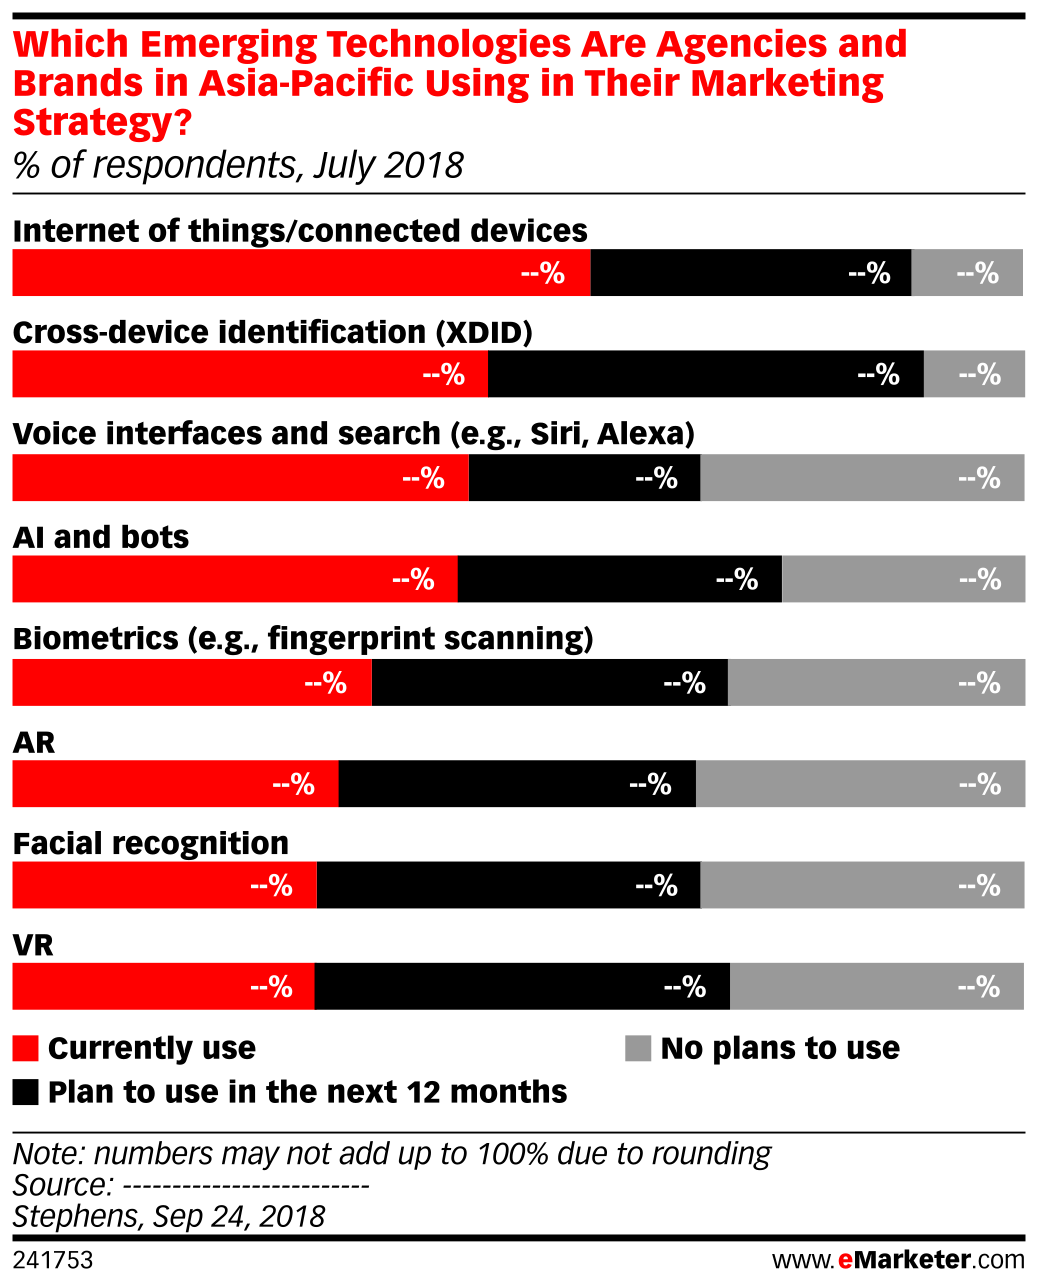 Which Emerging Technologies Are Agencies and Brands in Asia-Pacific Using in Their Marketing Strategy? (% of respondents, July 2018)